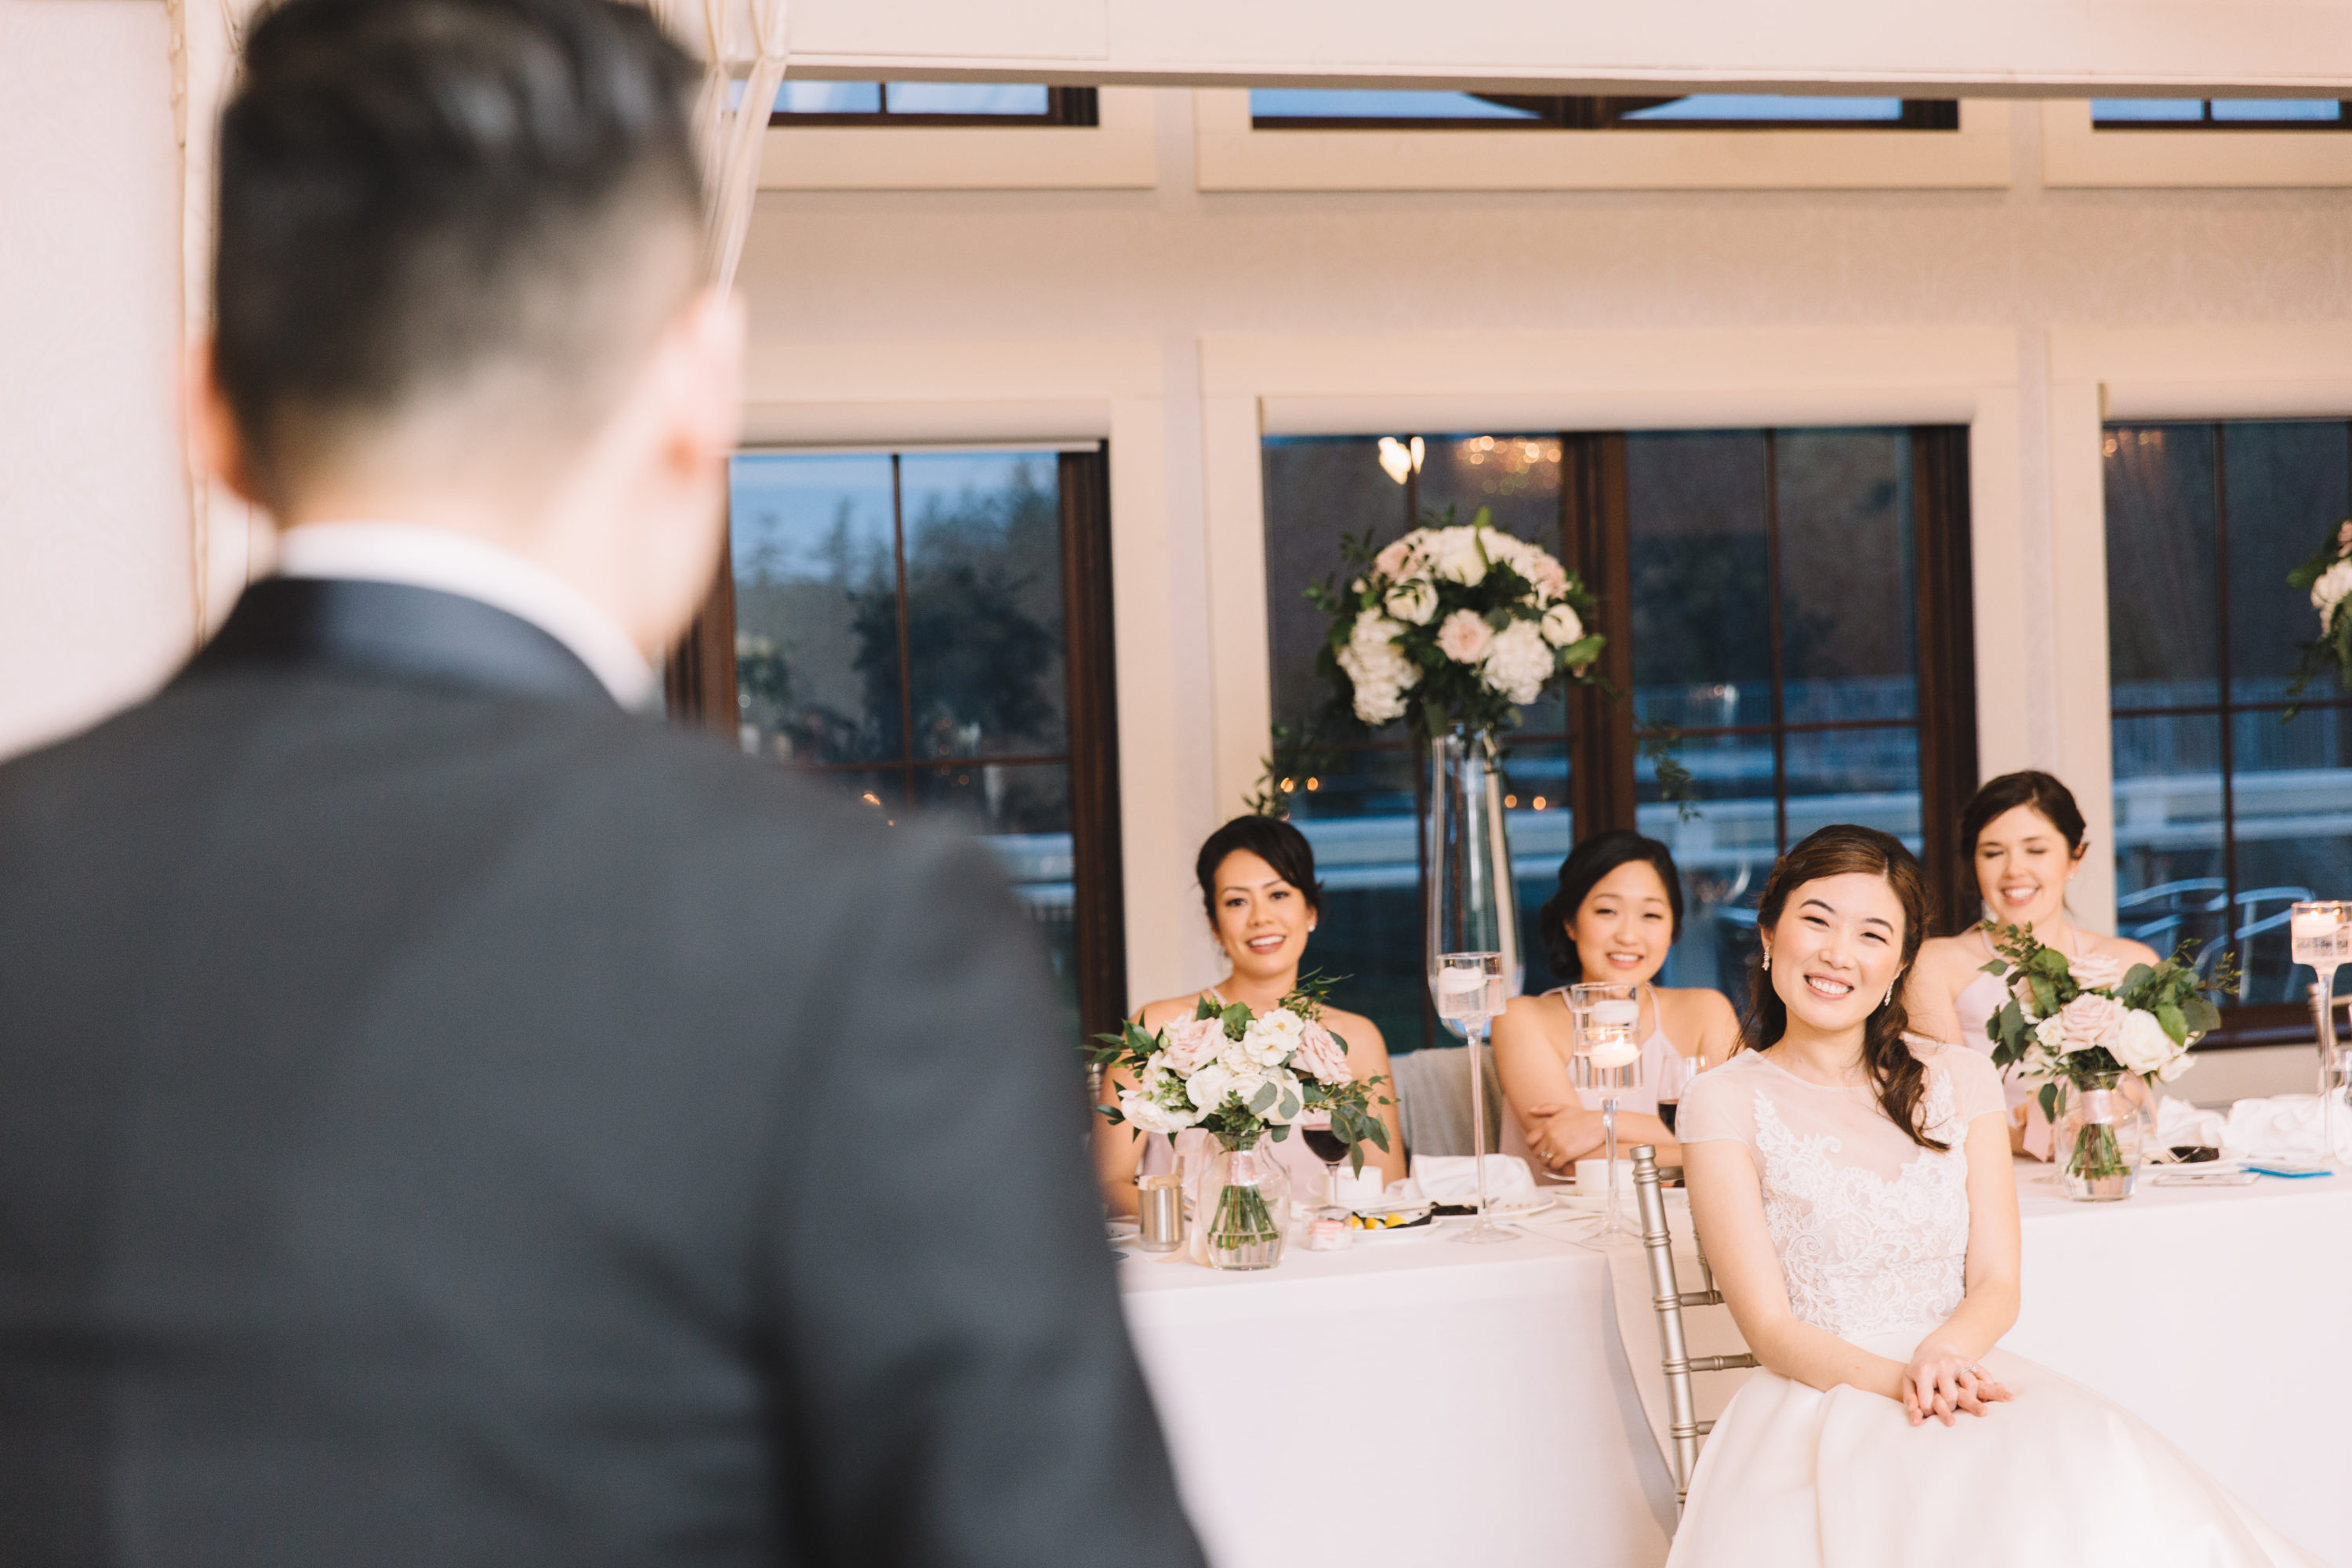 Groom sings to bride at whistle bear wedding